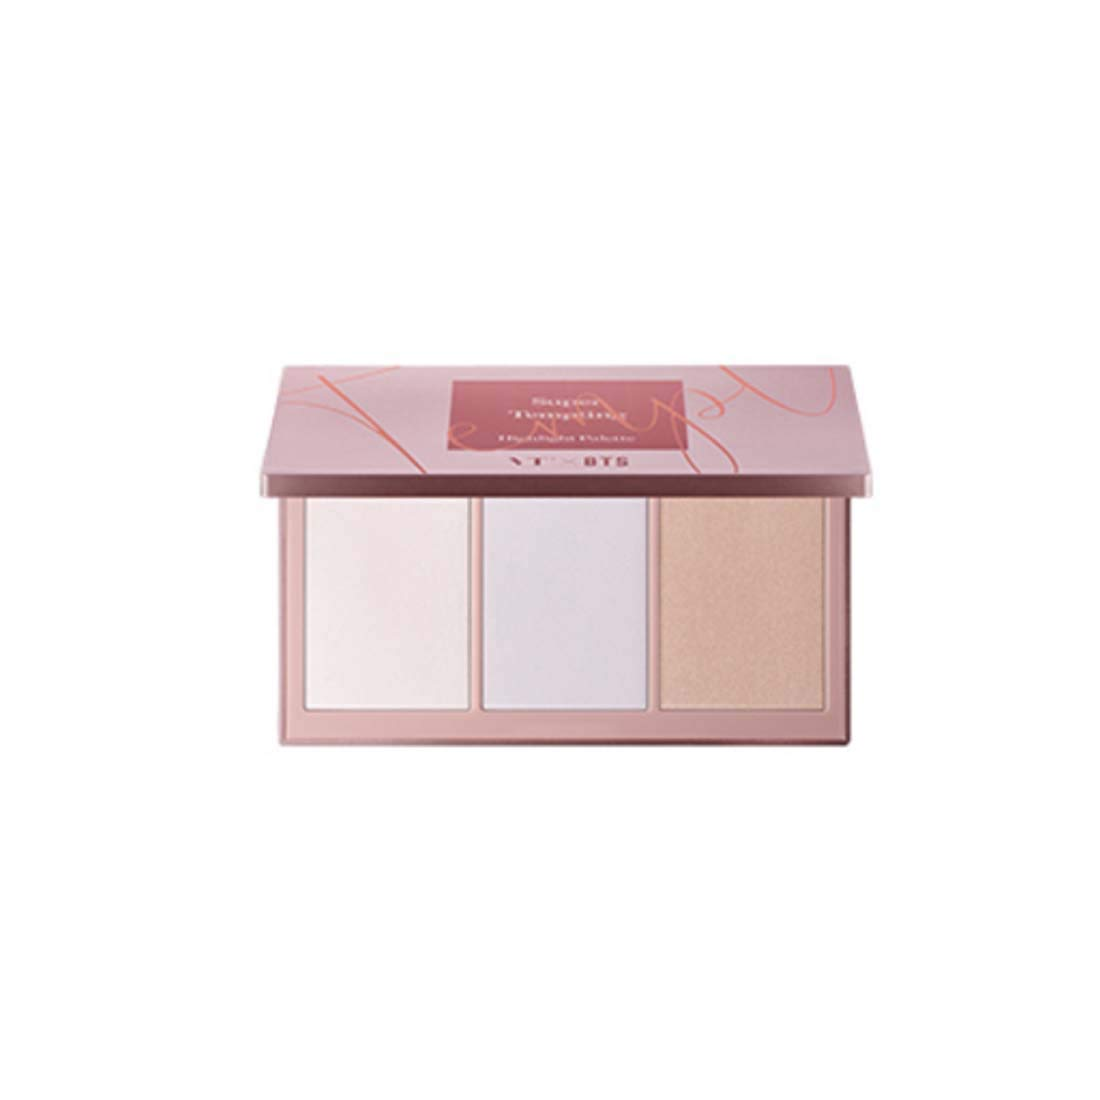 VT X BTS Super Tempting Highlight Palette 13.5g / highlighting palette, makeup highlighter palette, contour highlight palette, face highlighter